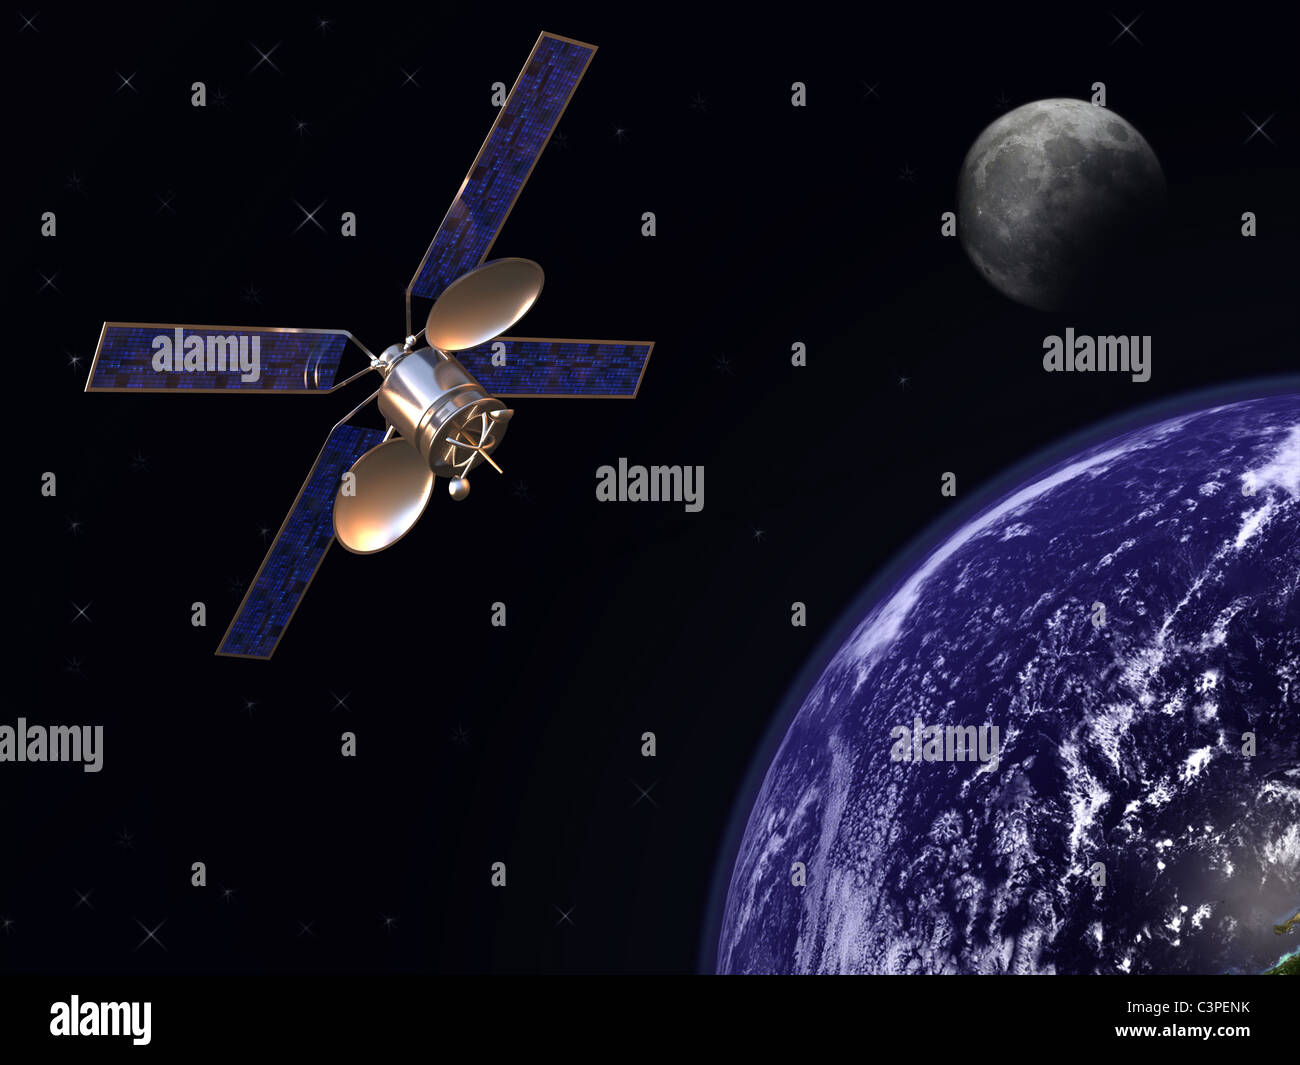 Communication satellite in earth orbit with moon in background - Stock Image